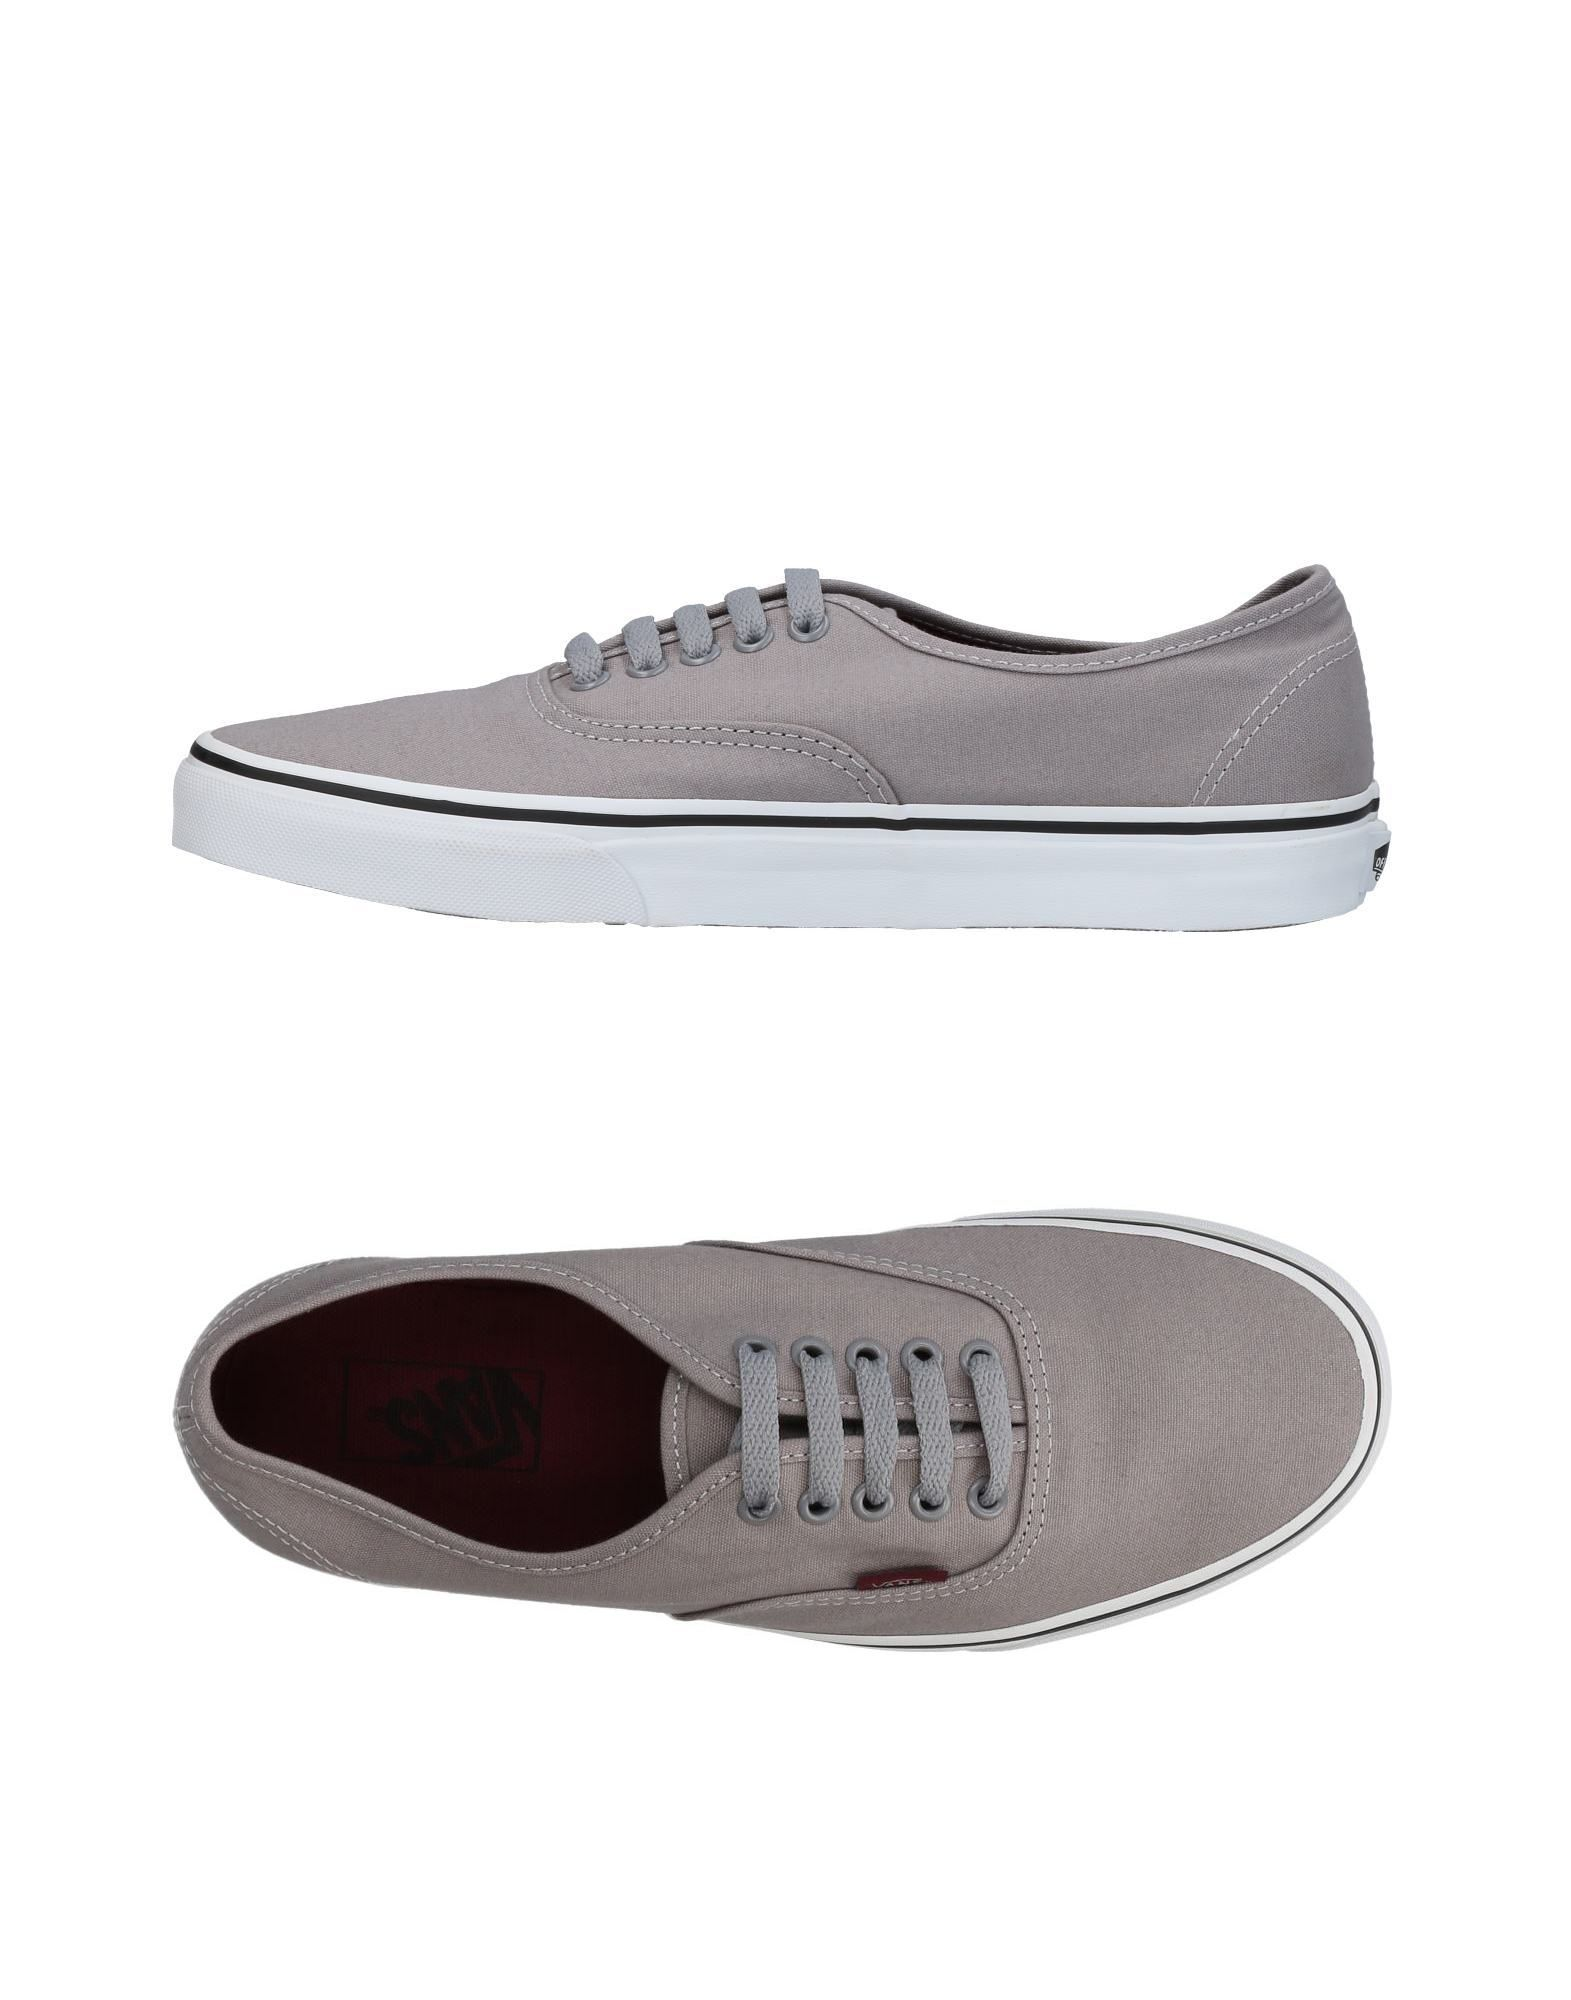 VANS Low-tops & sneakers - Item 11422902